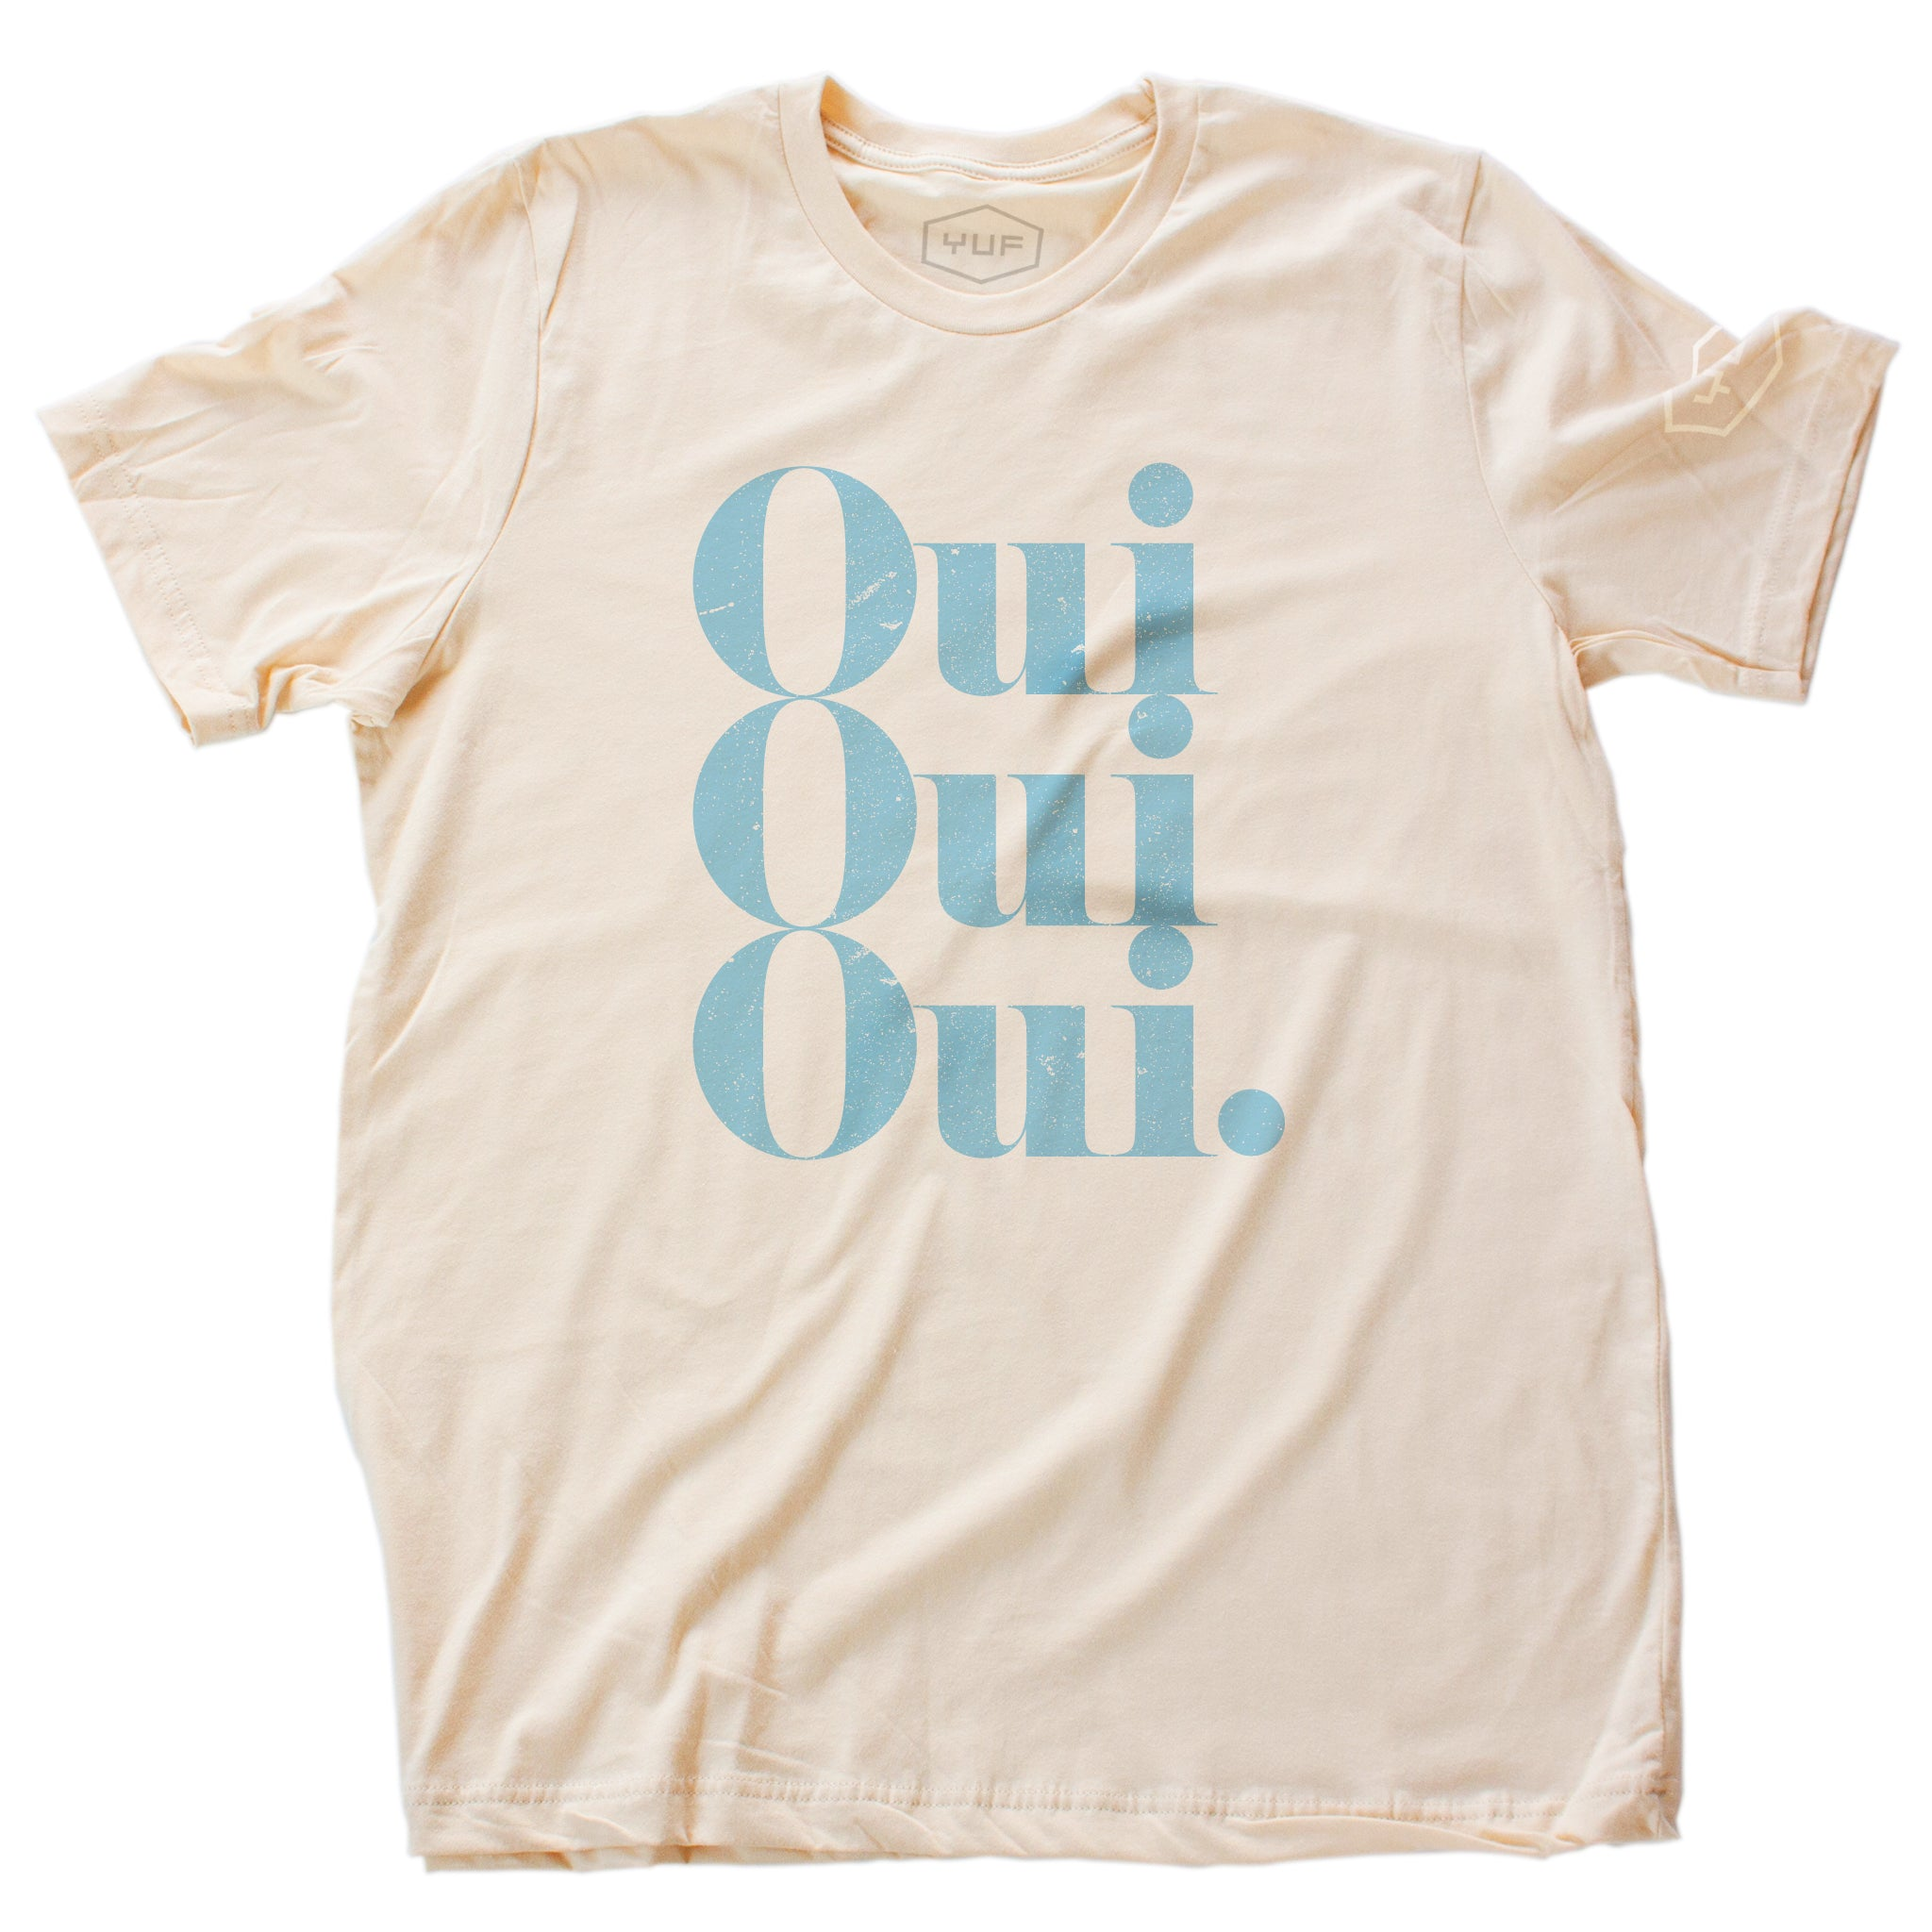 "A stylish retro graphic t-shirt with a vintage typographic treatment repeating the French word ""Oui"" (Yes) three times. In robin's egg blue on Soft Cream, by fashion brand YUF, from wolfsaint.net"